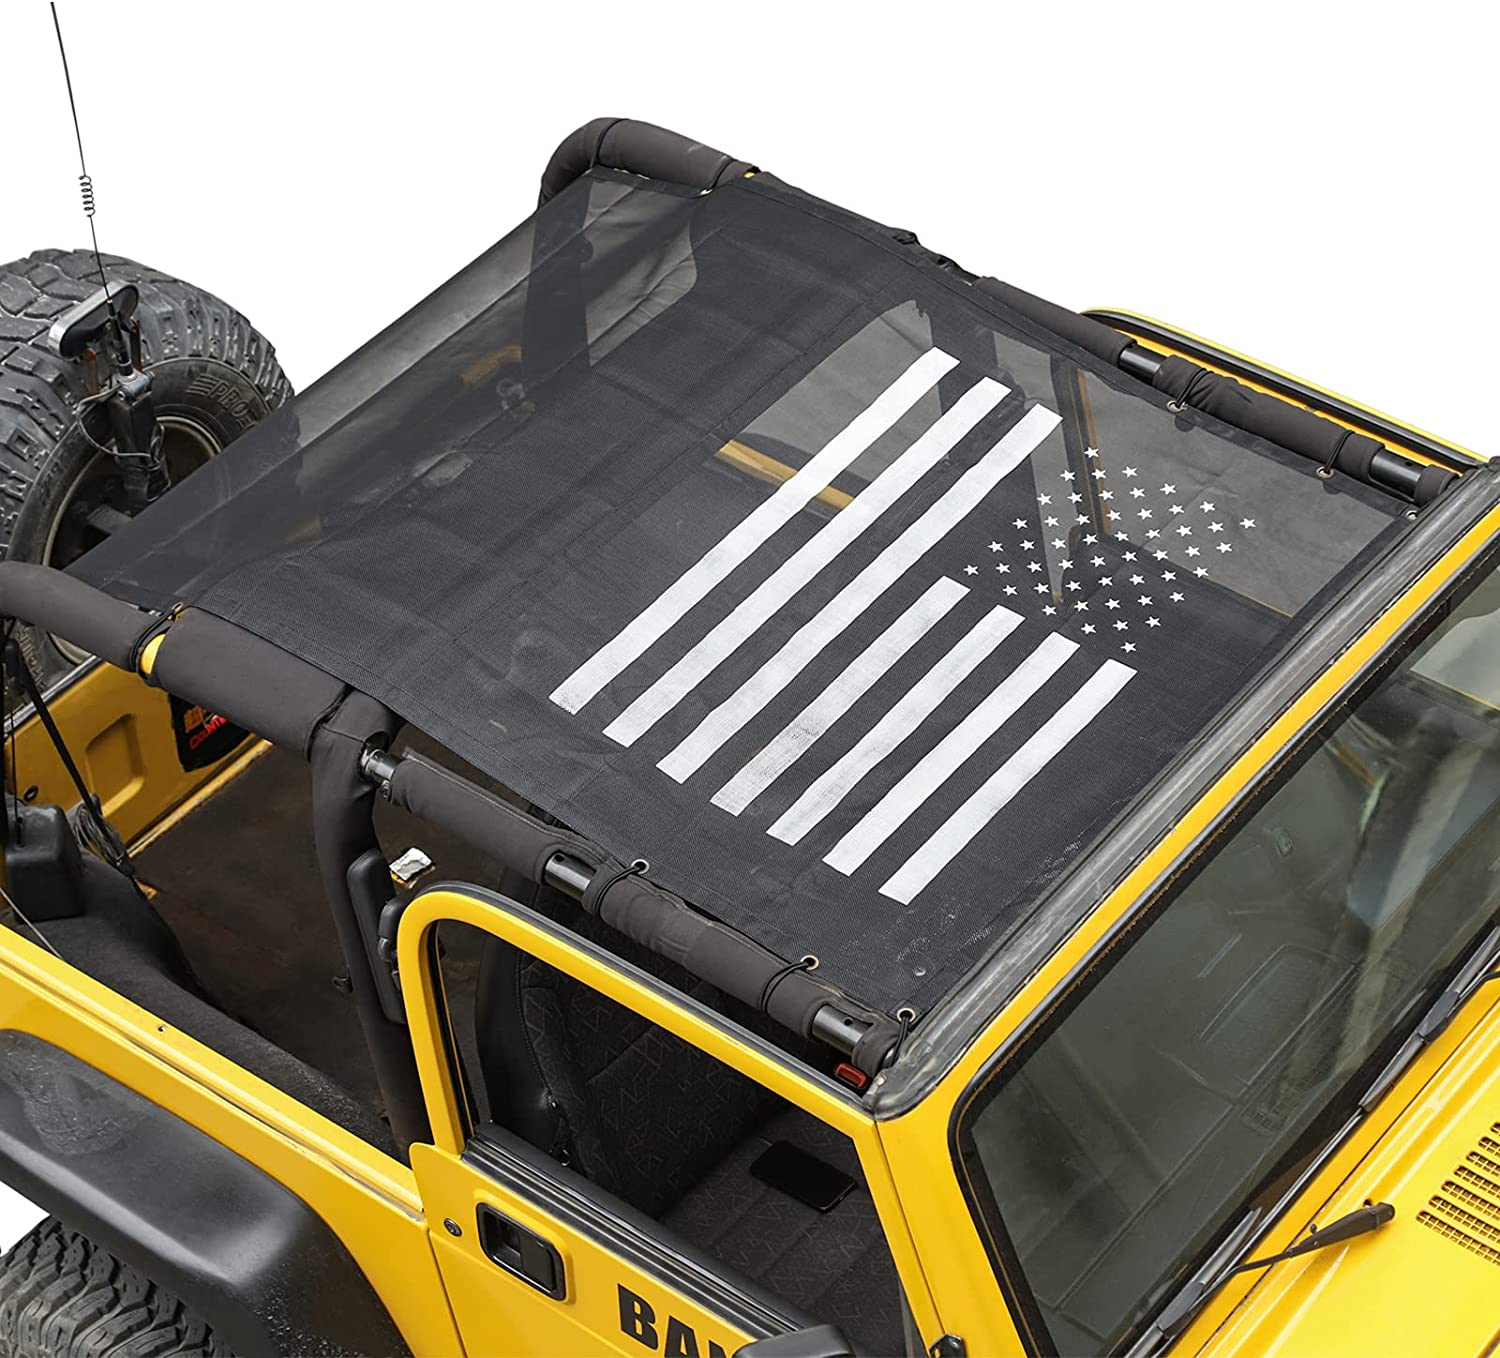 Dallas Mall Quality inspection RT-TCZ Jeep Wrangler TJ US Flag Mesh Shade Durable Top Polyester